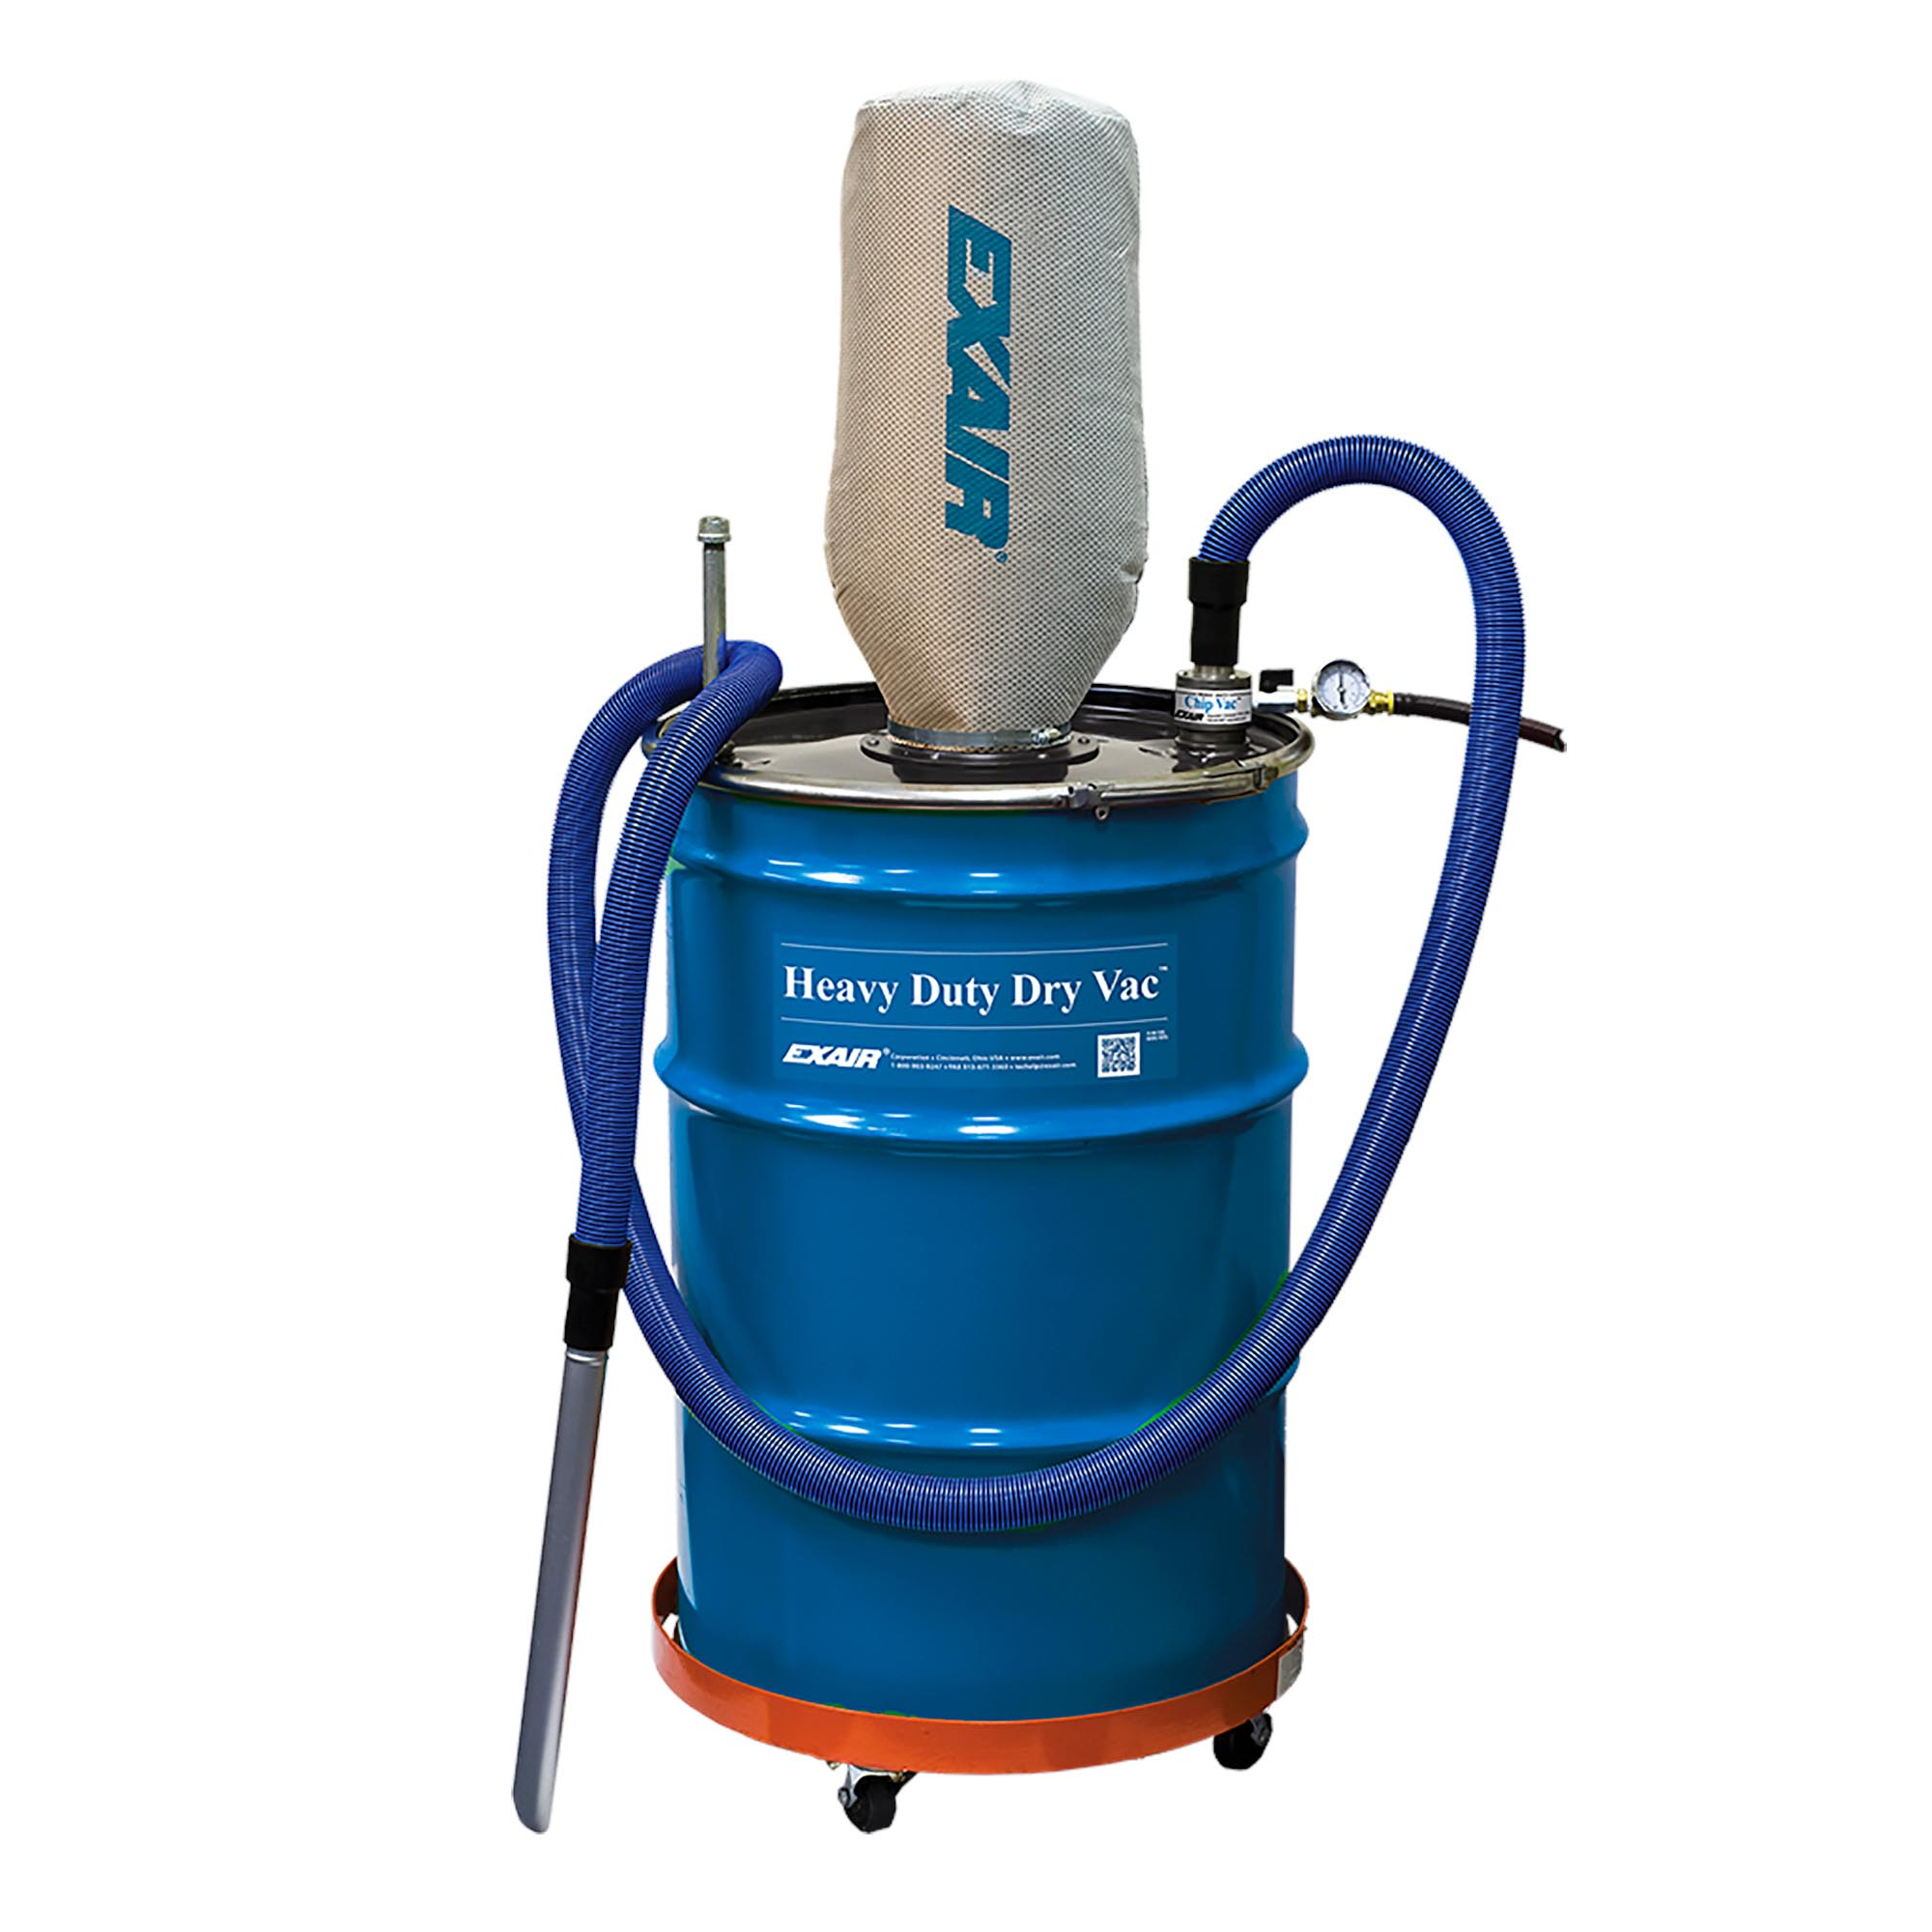 Model 6397 55 Gallon Premium Heavy Duty Dry Vac System